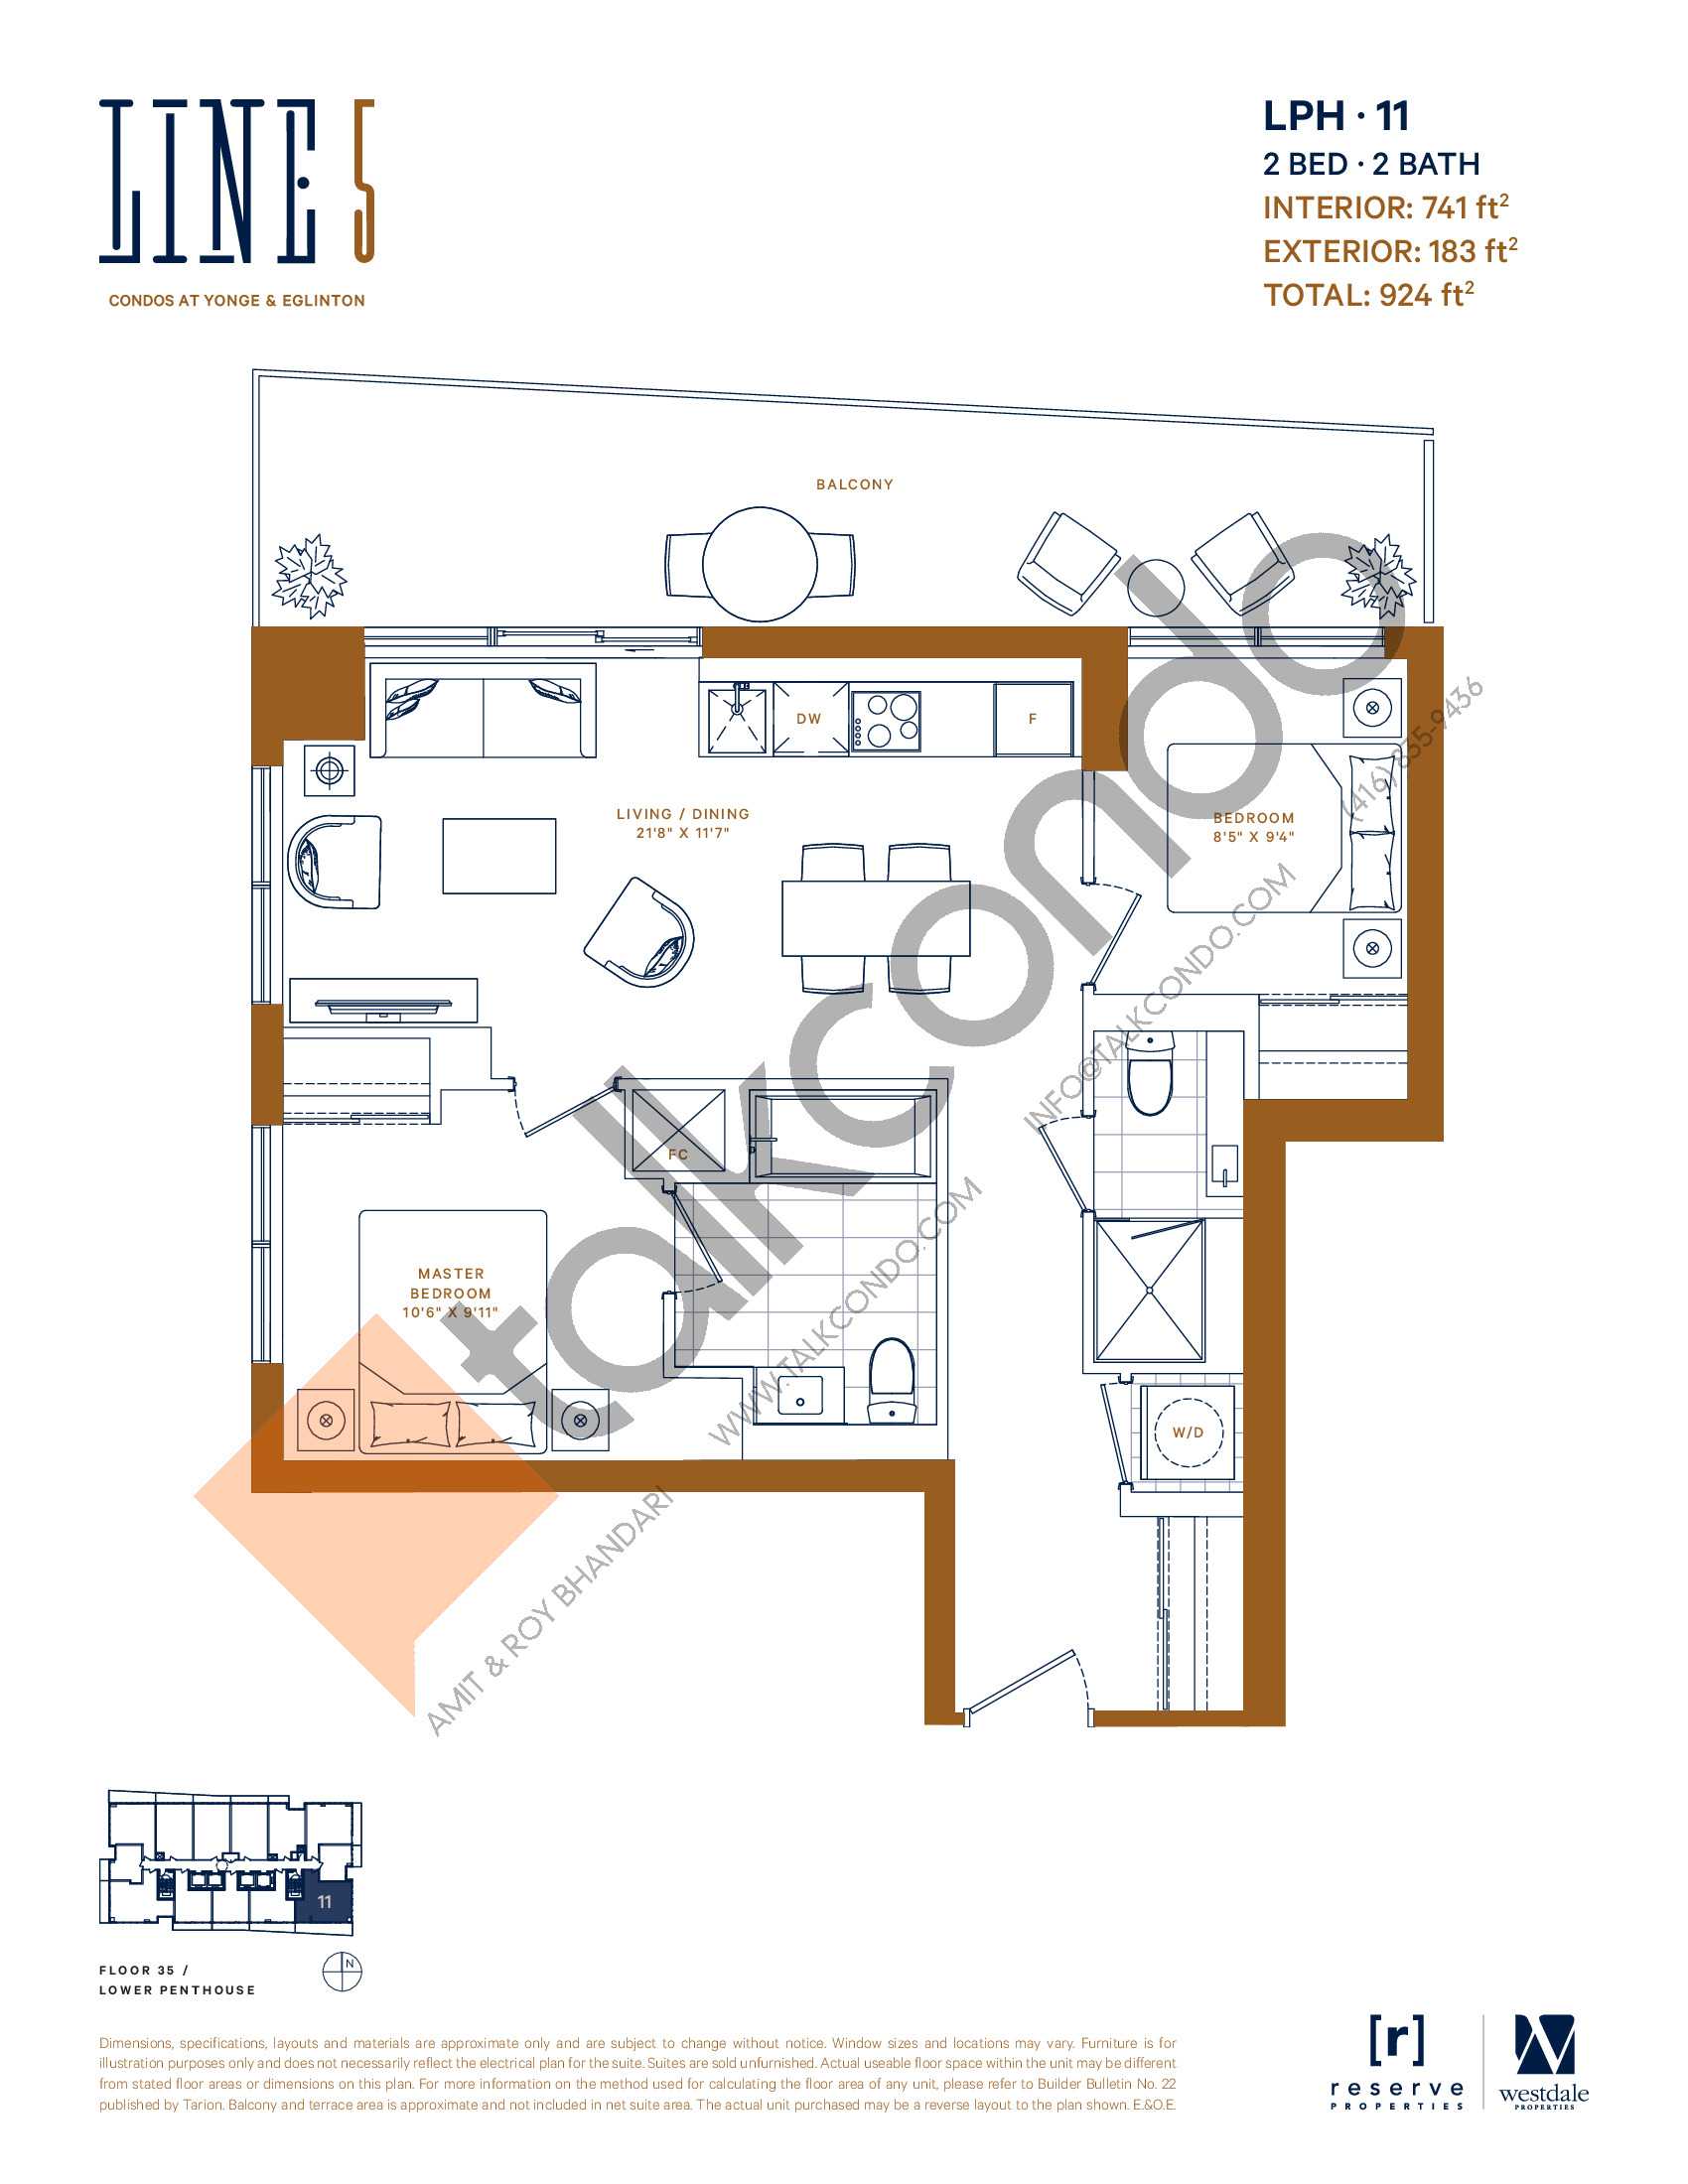 LPH-11 Floor Plan at Line 5 South Tower Condos - 741 sq.ft